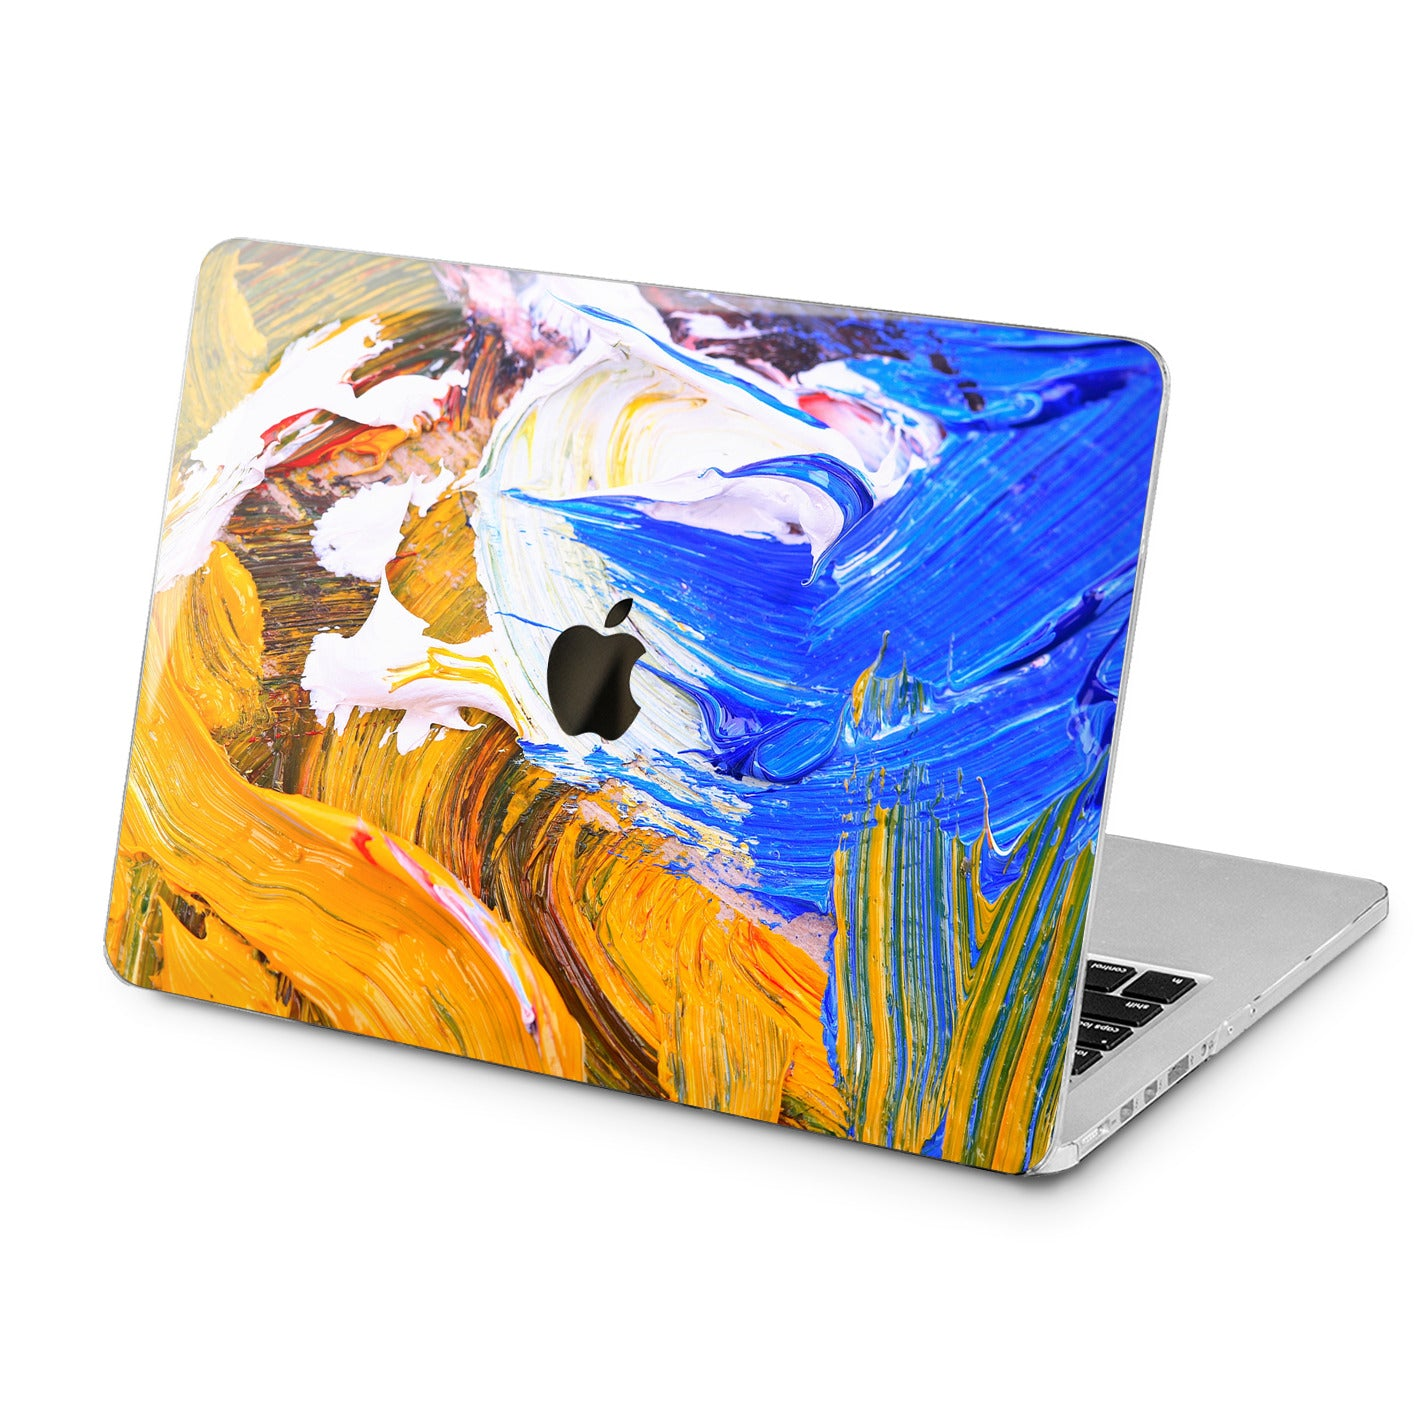 Lex Altern Lex Altern Gouaches Print Case for your Laptop Apple Macbook.